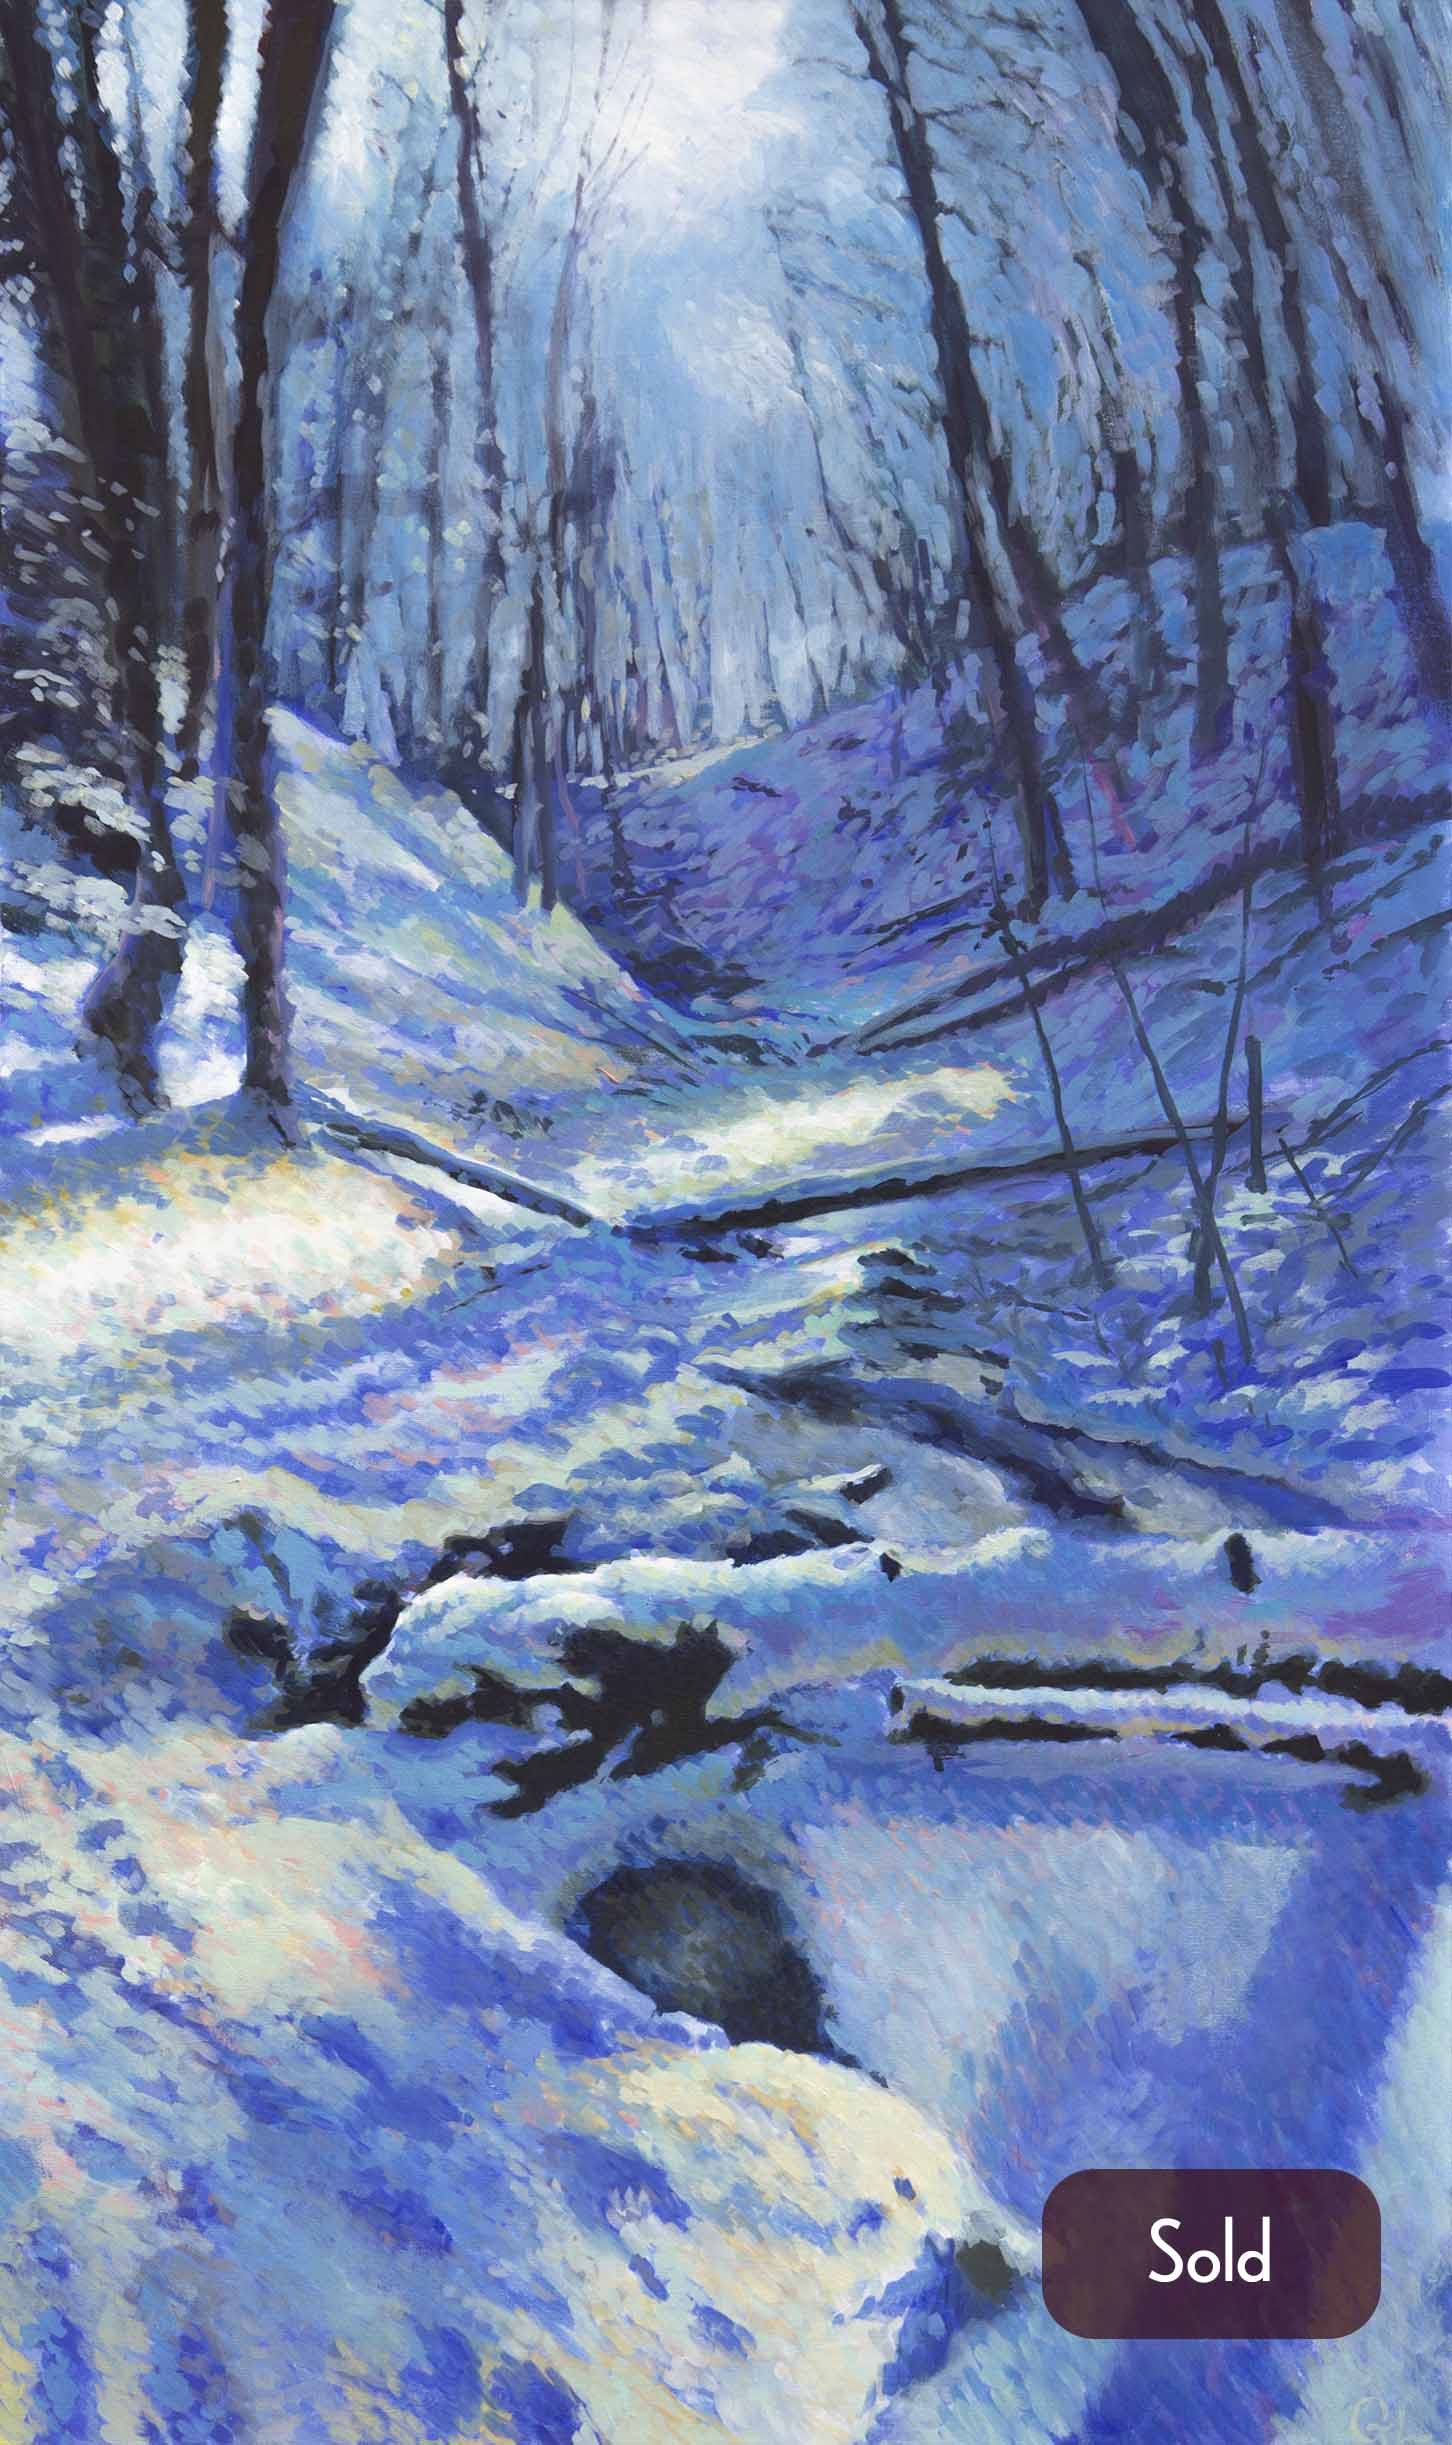 Snow Covered River in Hockley Valley -web -sold.jpg